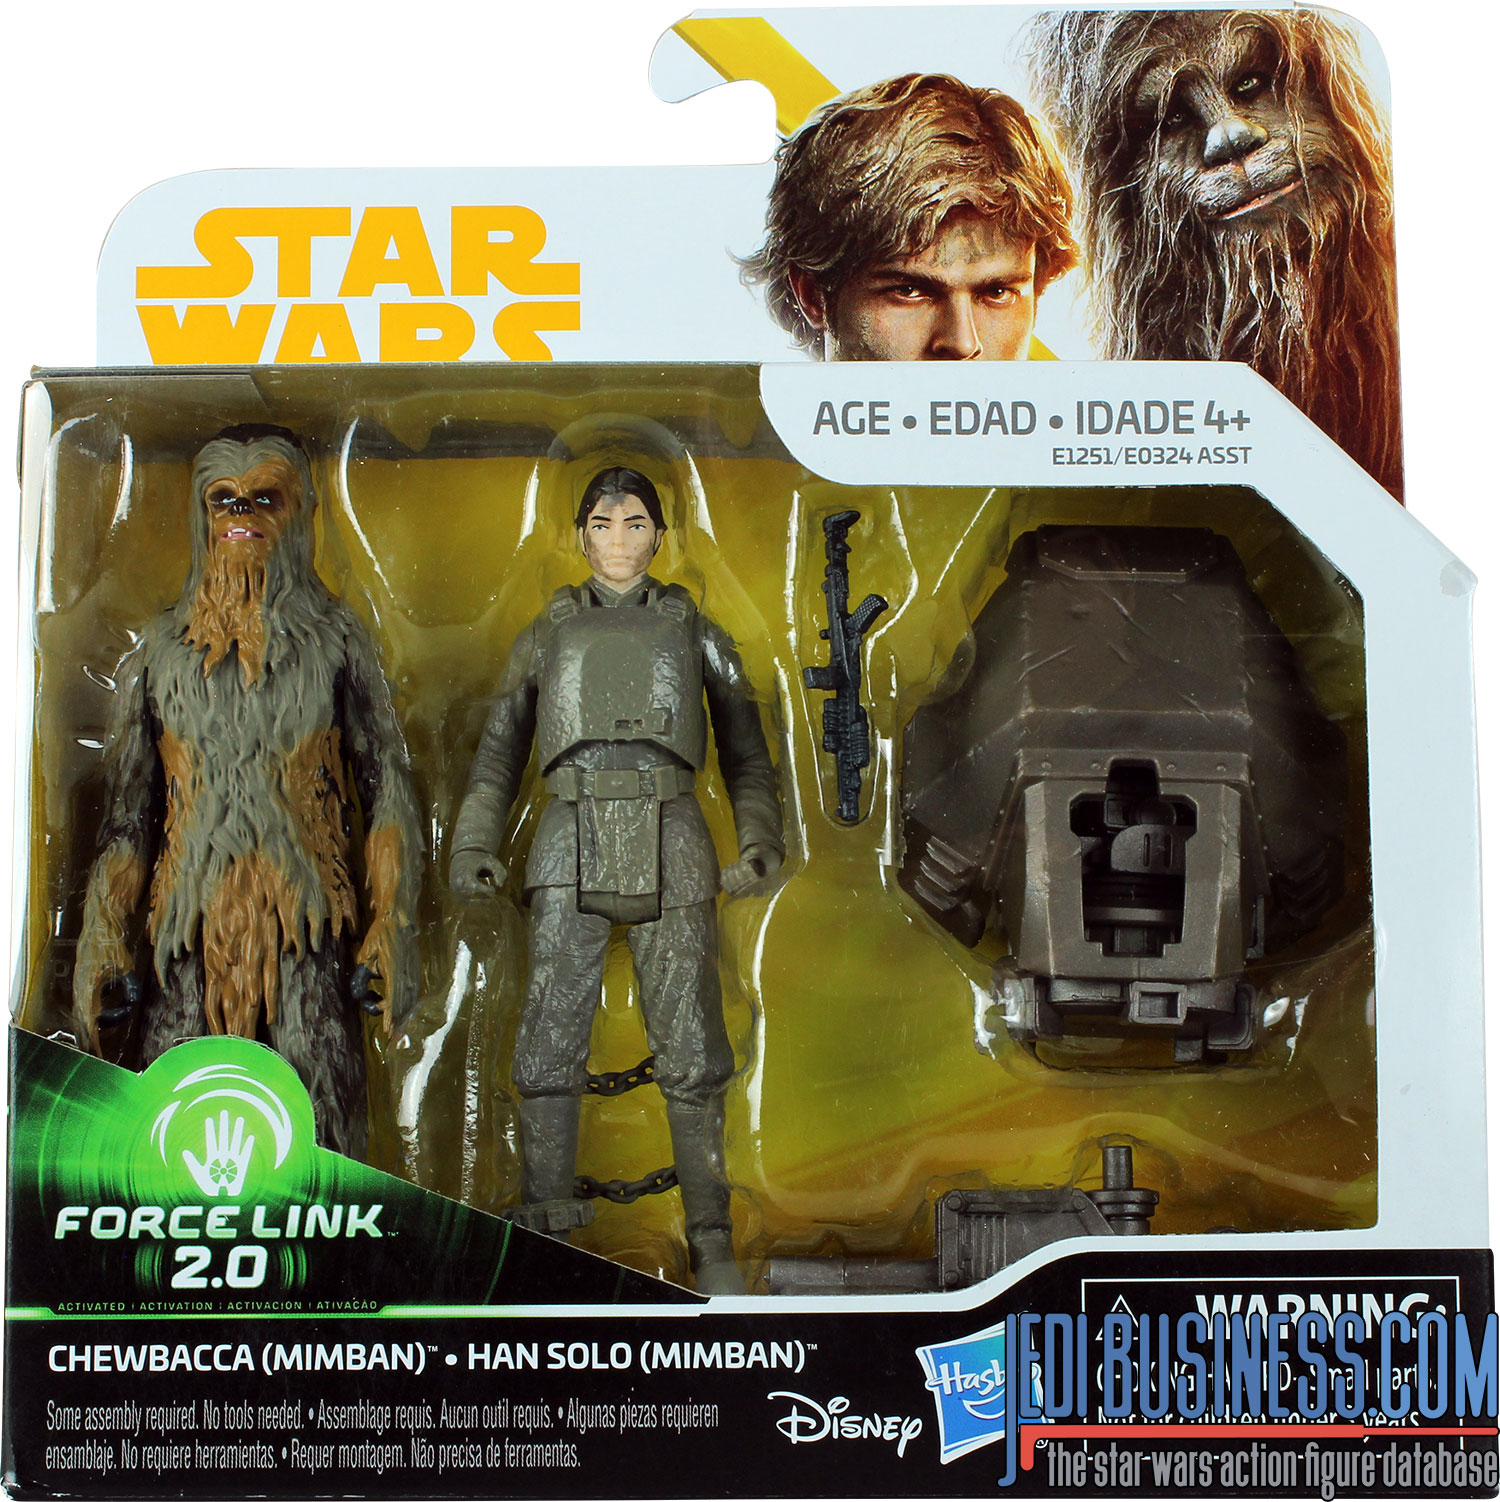 Chewbacca, 2-Pack #4 With Han Solo (Mimban)